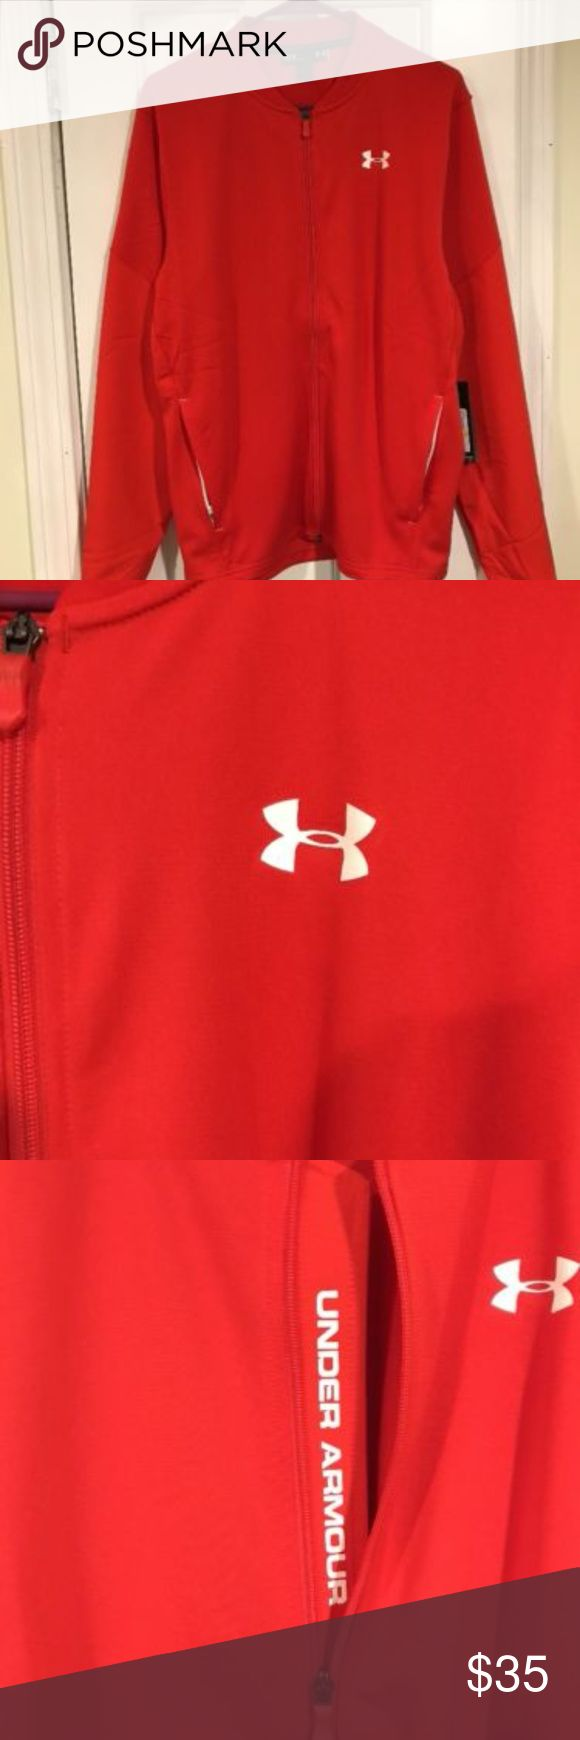 Men's Med Under Armour Red Fitted Full Zip Jacket Men's Medium Under Armour Red Fitted Full Zip Jacket  Brand new with tags Men's Medium Red full zip fitted jacket Under Armour Under Armour Jackets & Coats Lightweight & Shirt Jackets